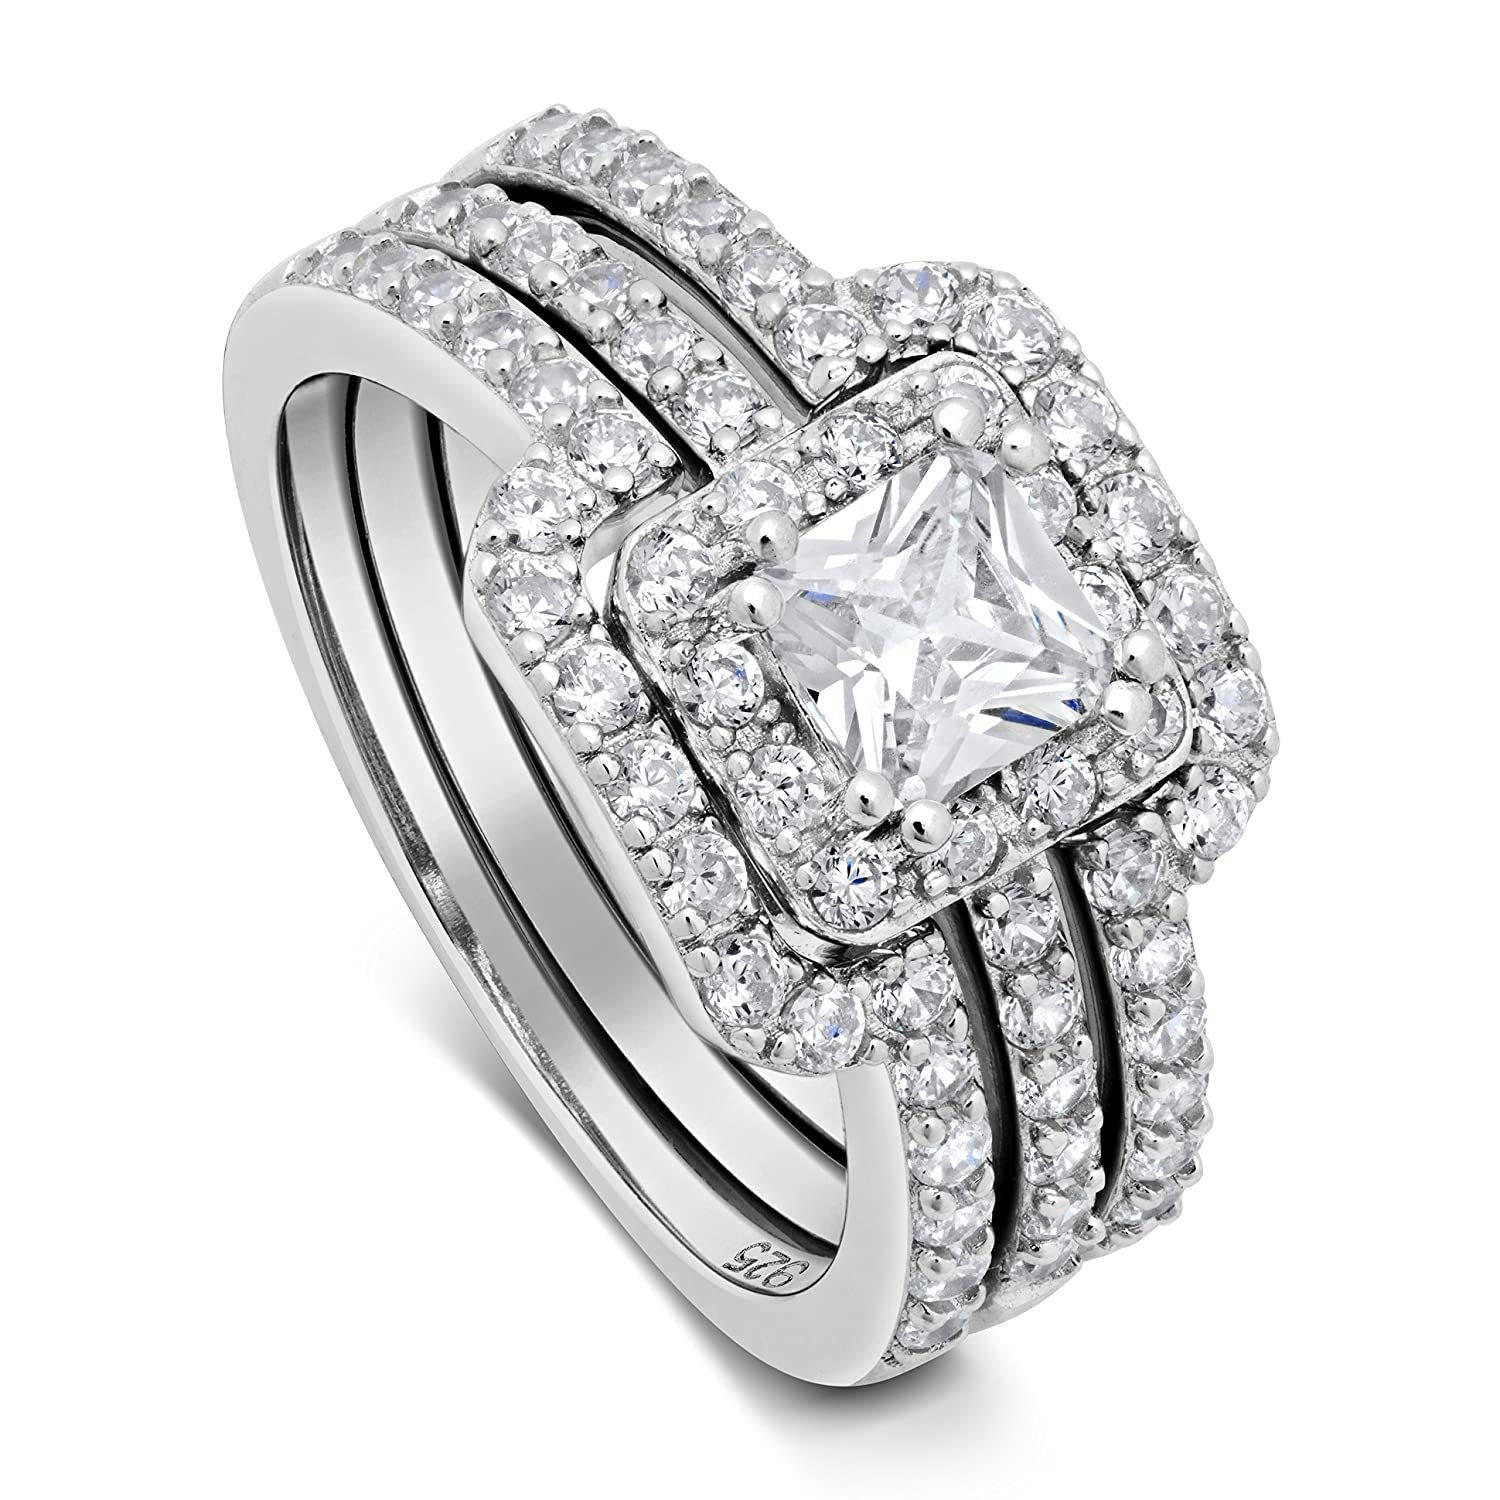 new of nj engagement cartier cliffs englewood ring luxury tri flower alluring band rings double store jewelry wedding c triple diamond